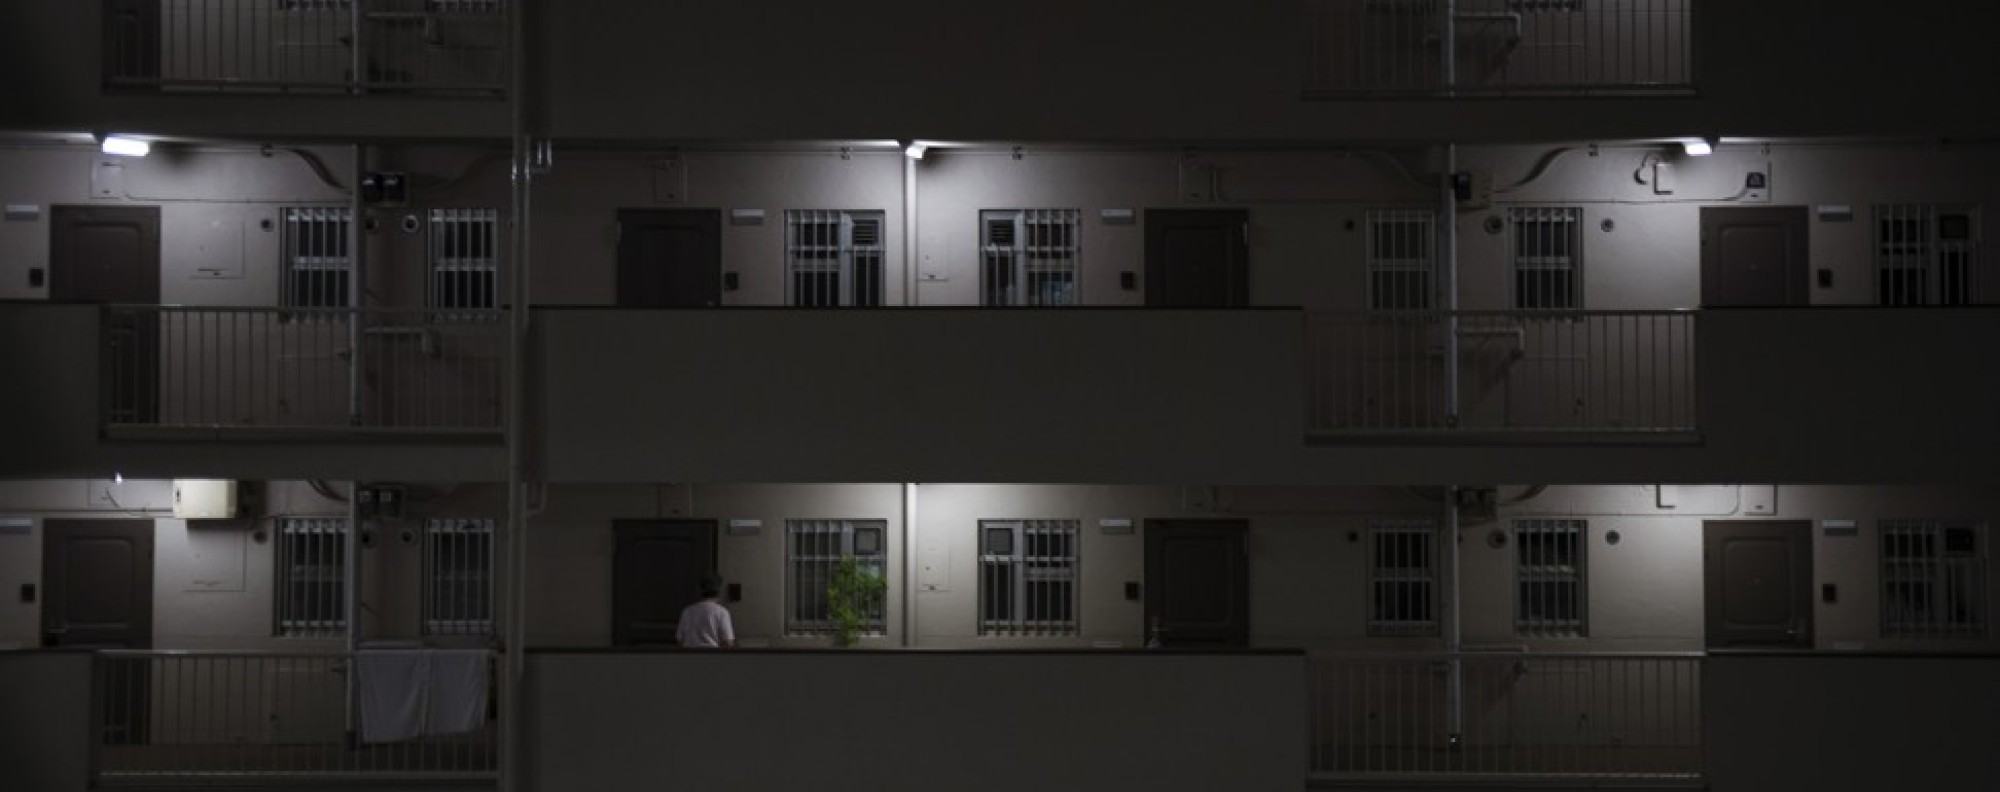 A huge government housing complex in Tokiwadaira, Japan, has become known as the home of the lonely death.